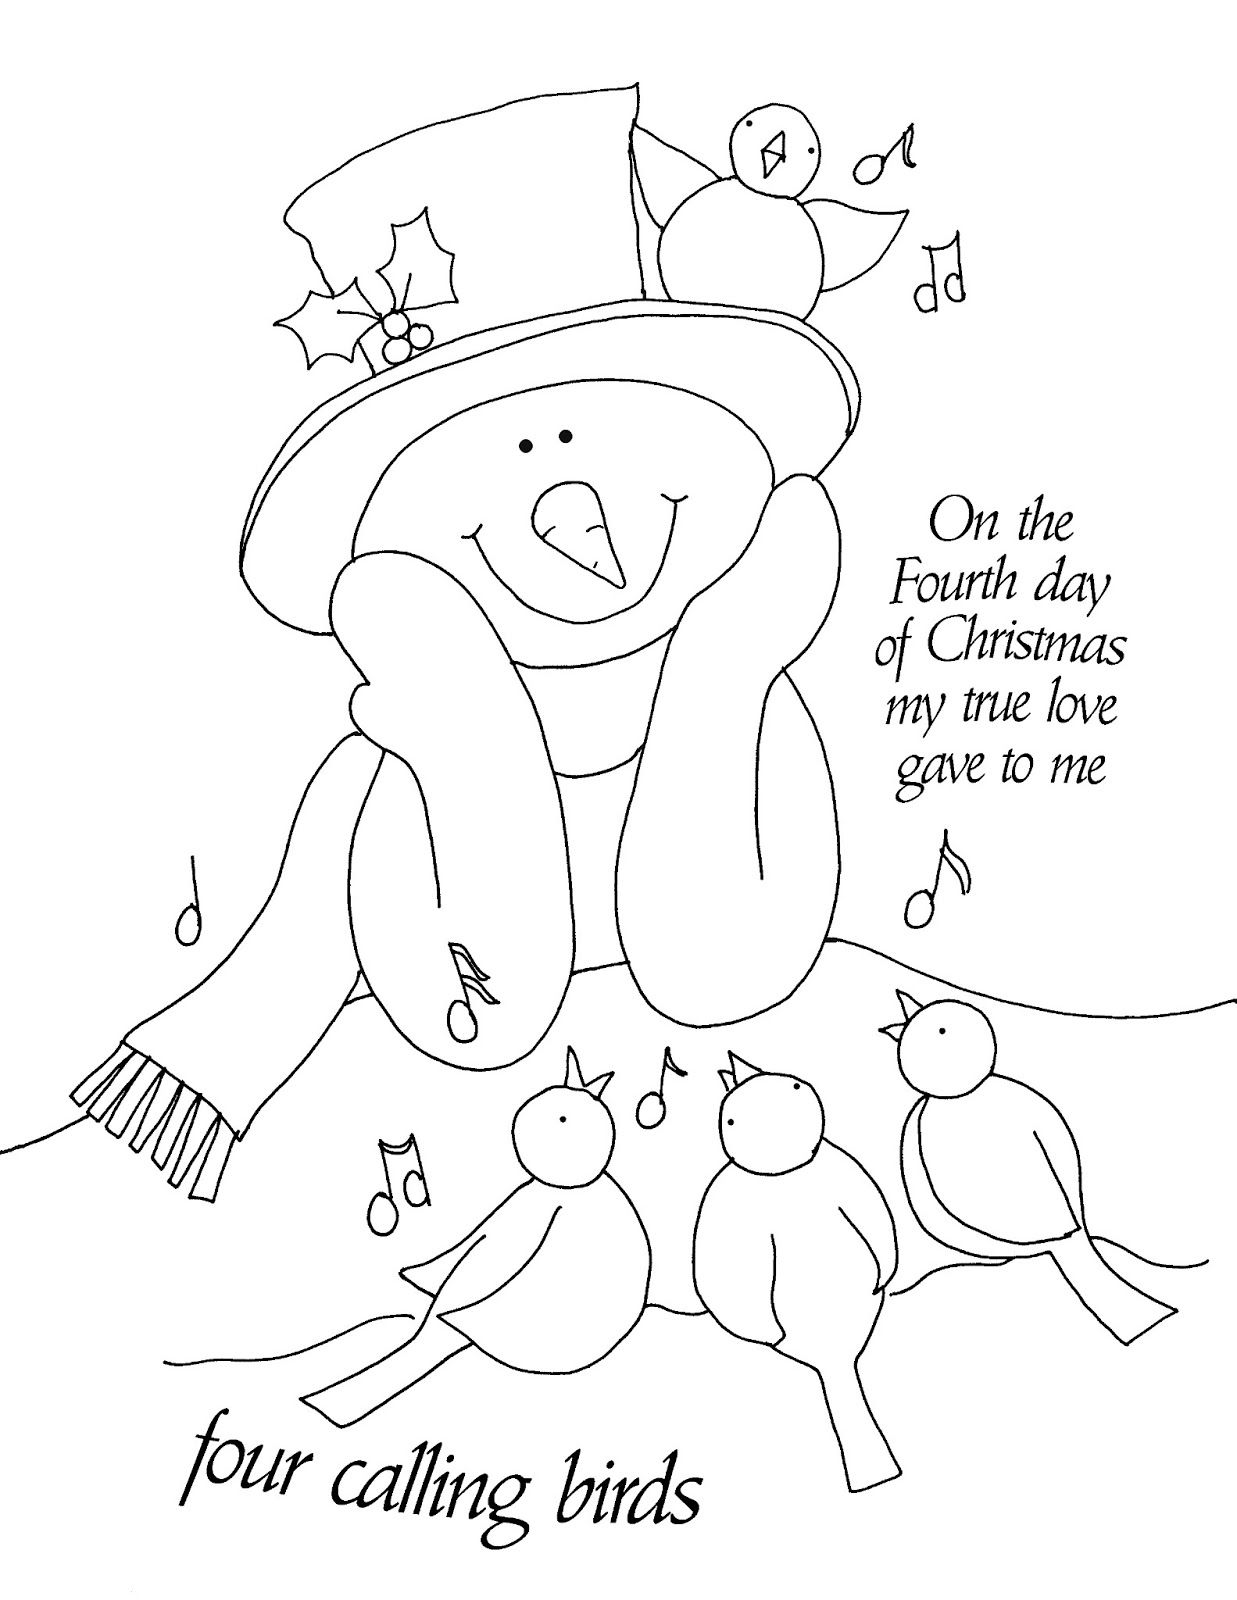 Free Dearie Dolls Digi Stamps: On the Fourth Day of Christmas...